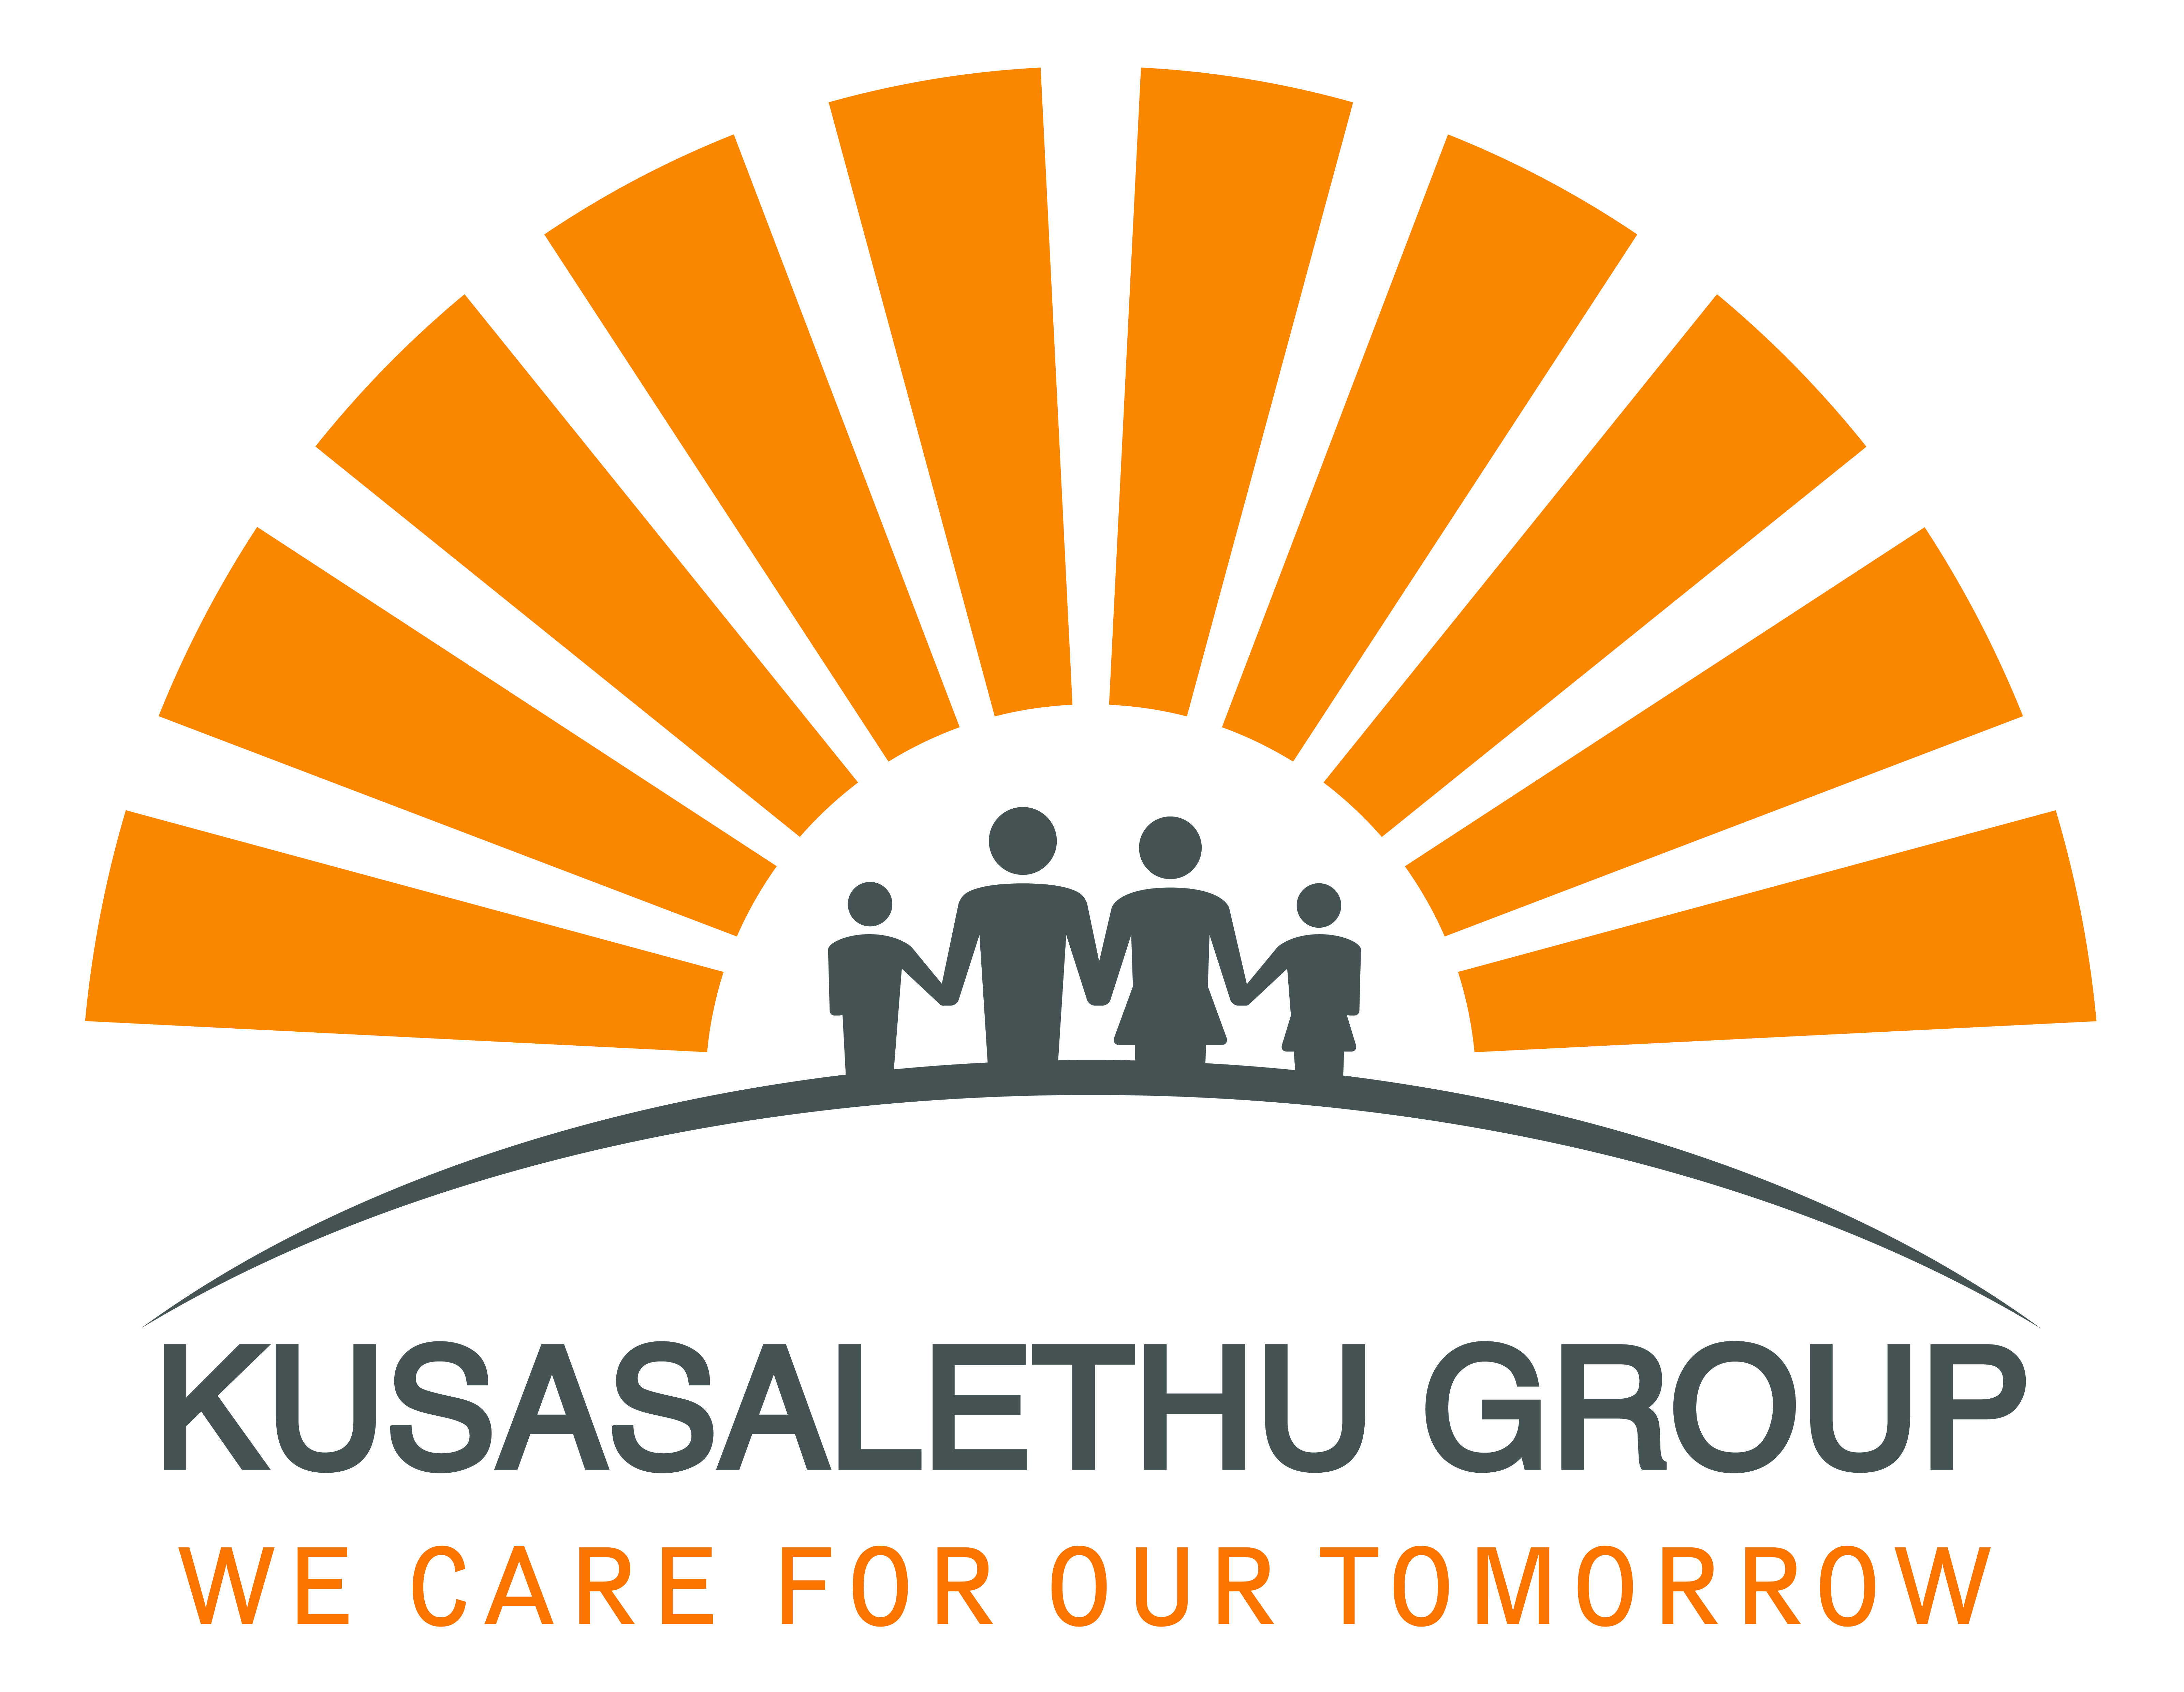 Kusasalethu Group